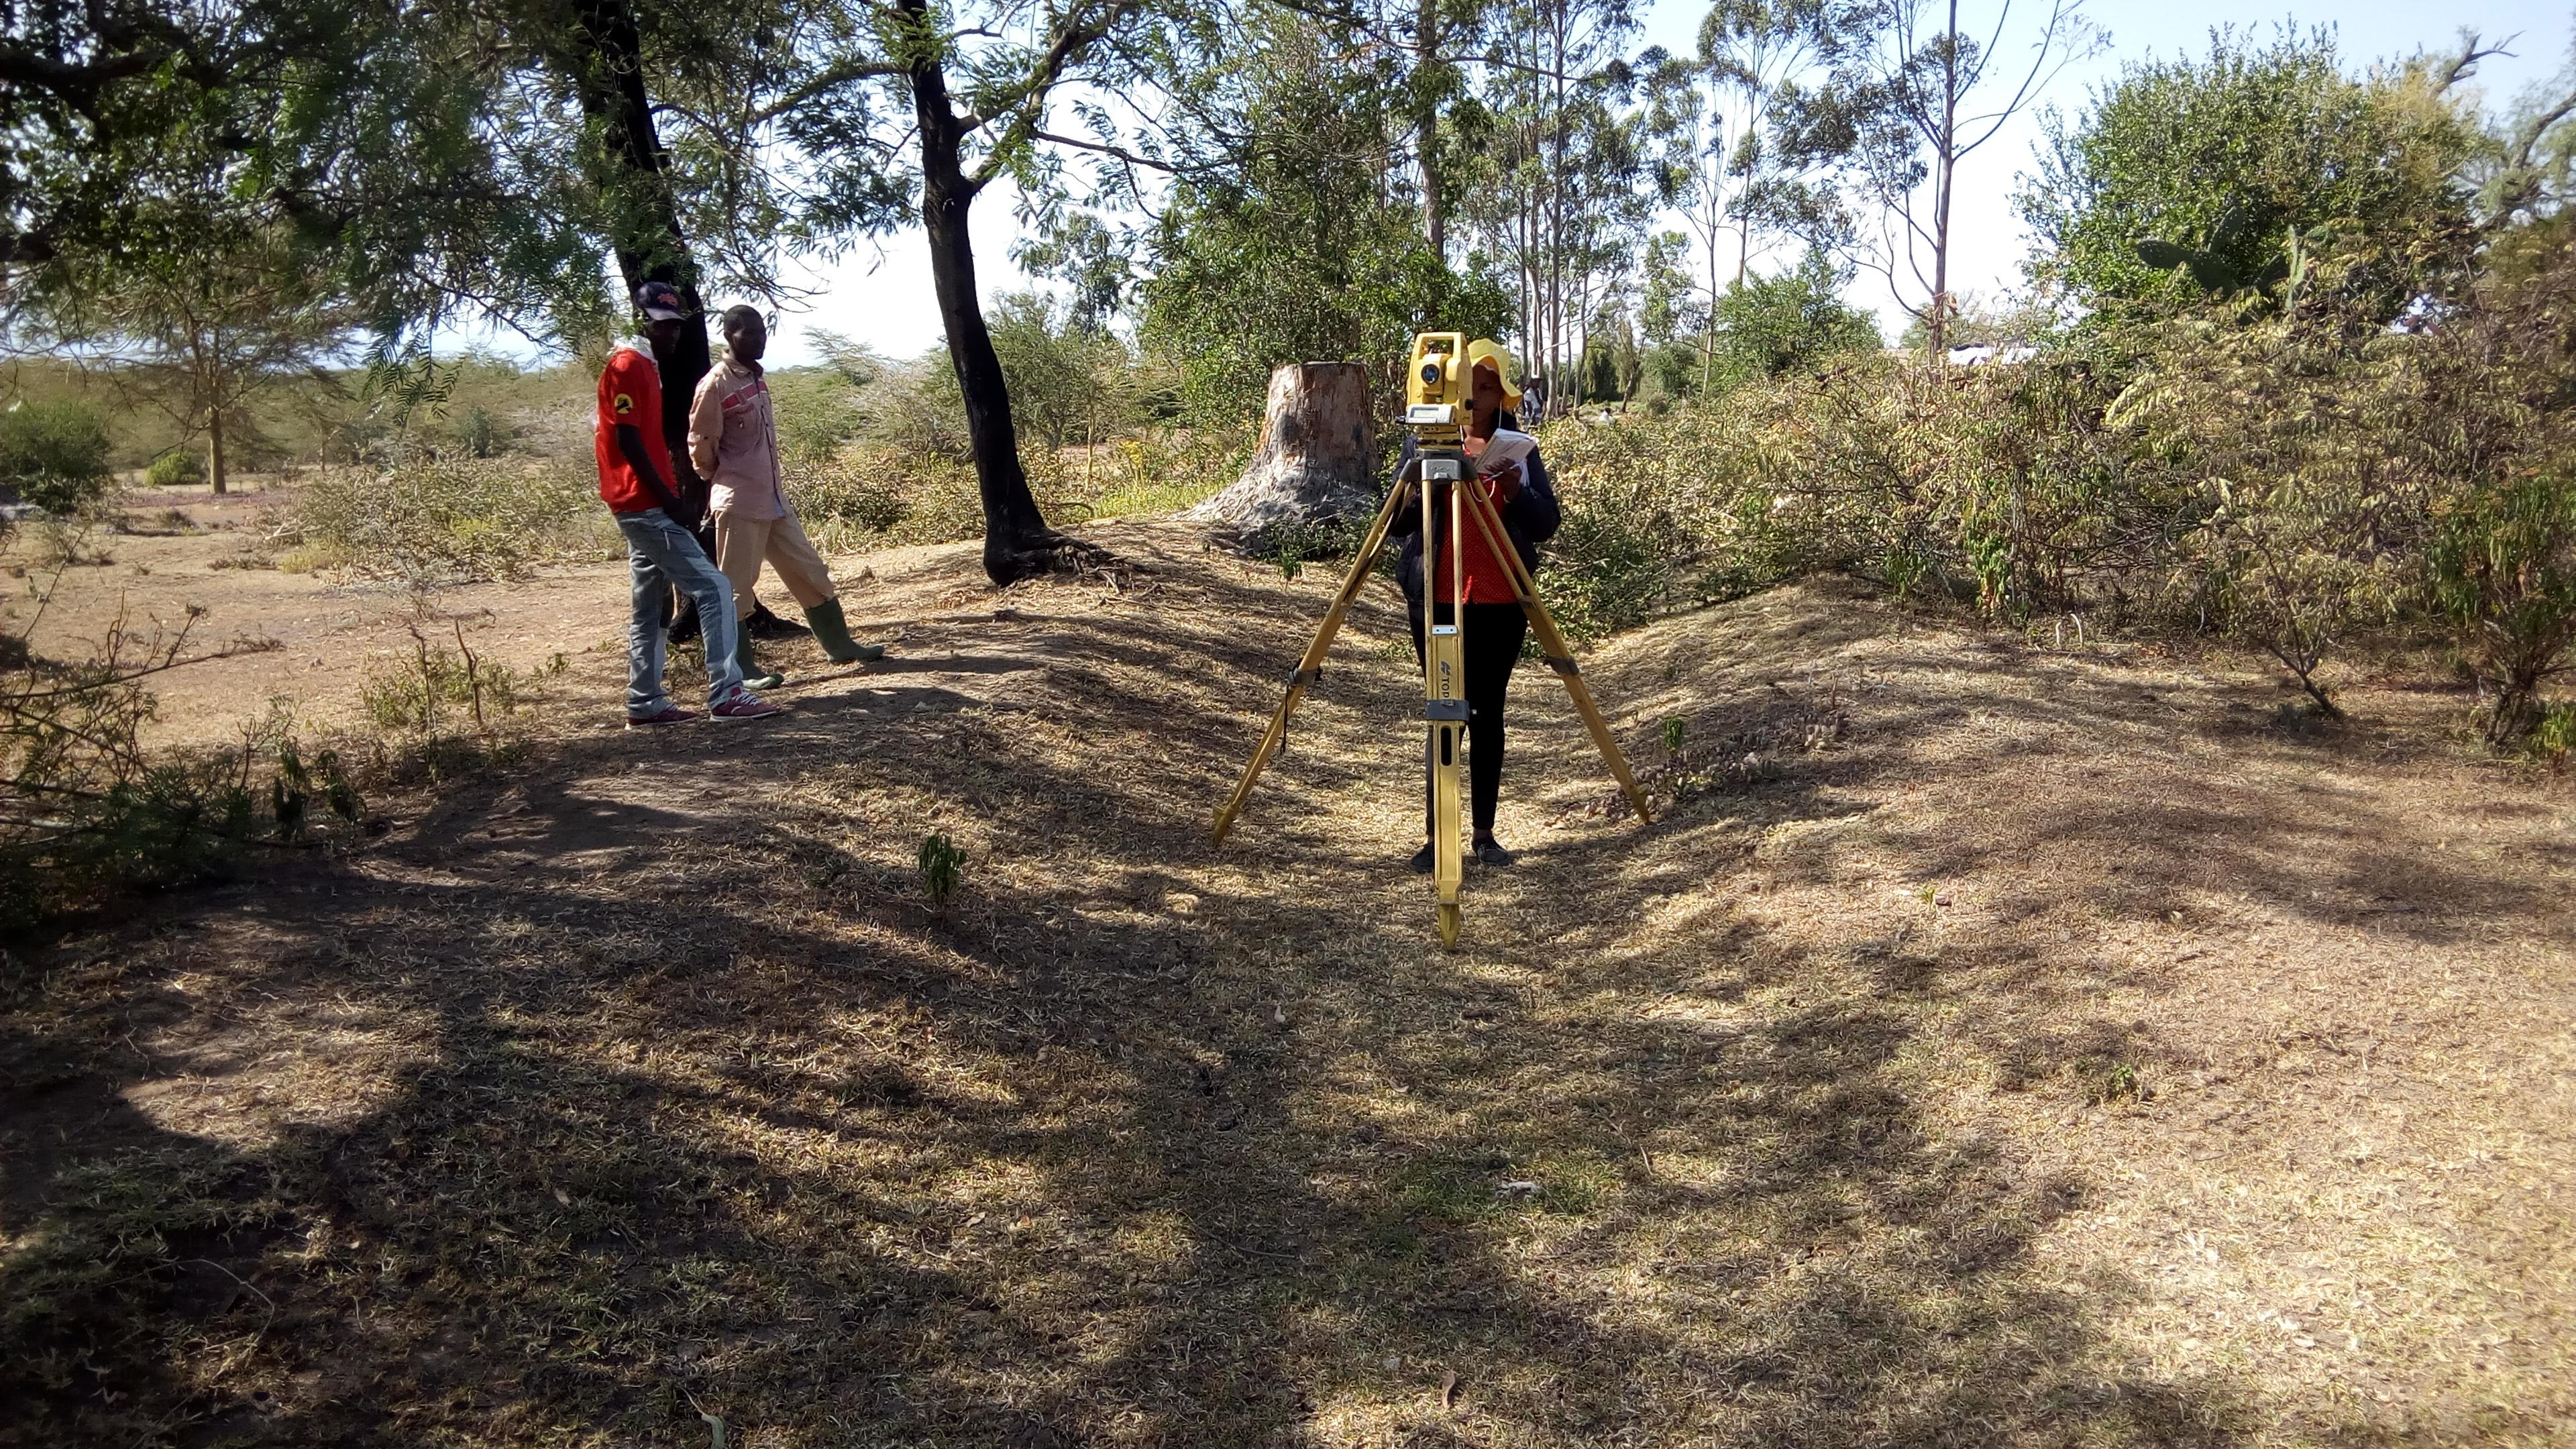 The surveyors at work carrying out engineering survey of the proposed water works